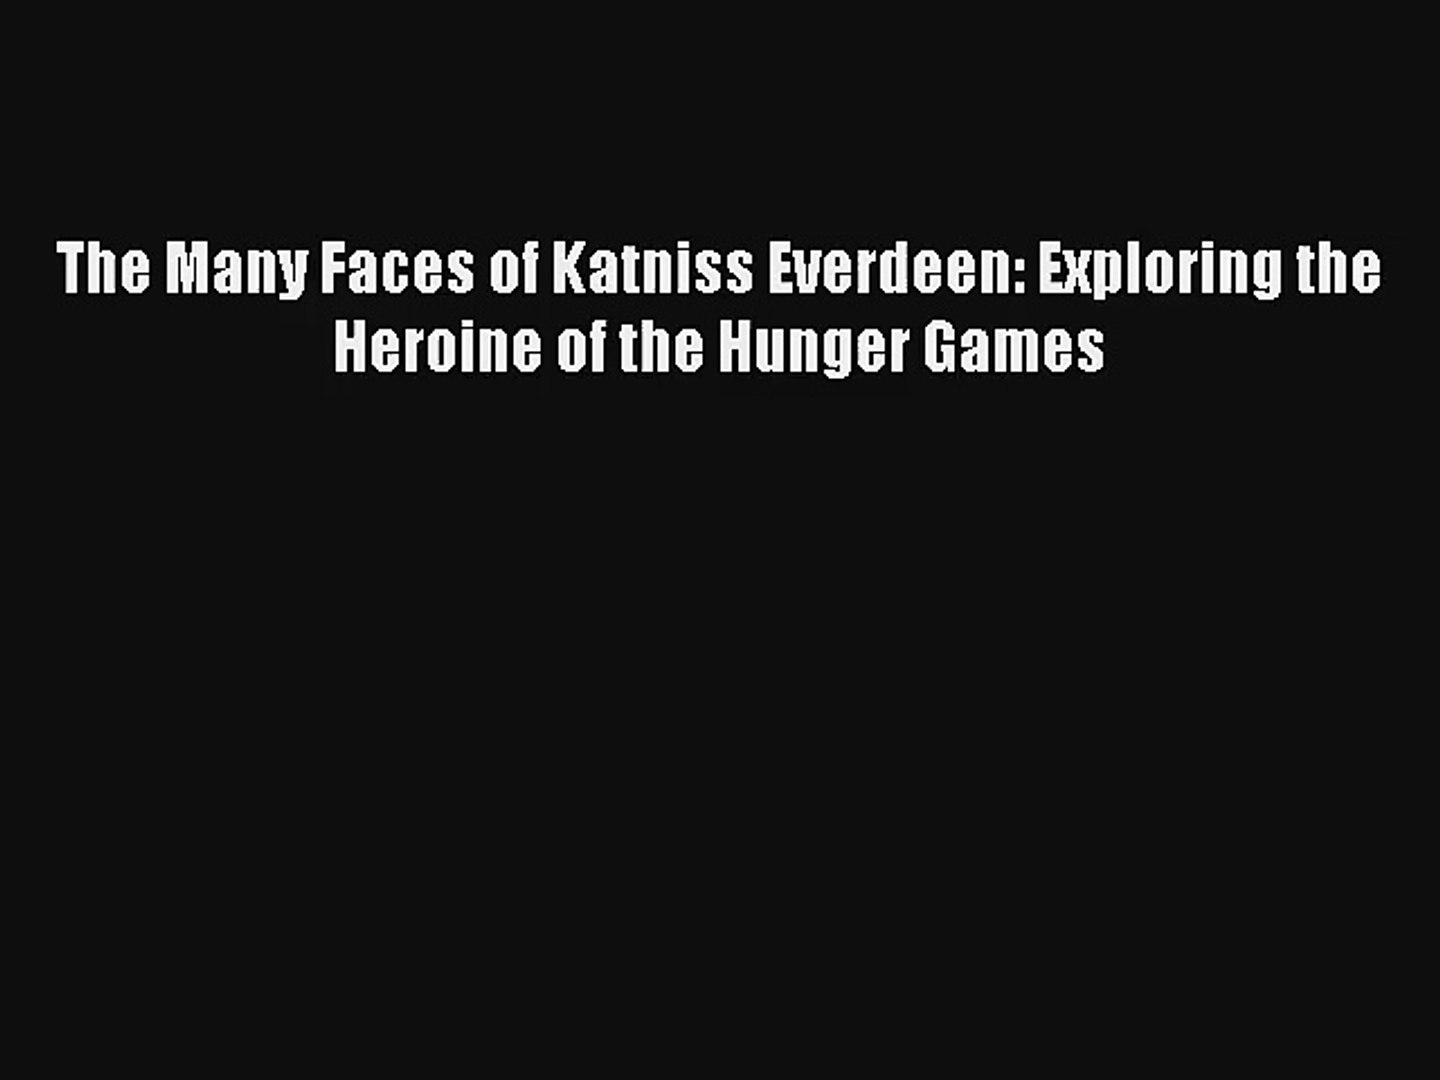 The Many Faces of Katniss Everdeen: Exploring the Heroine of the Hunger Games [Read] Online